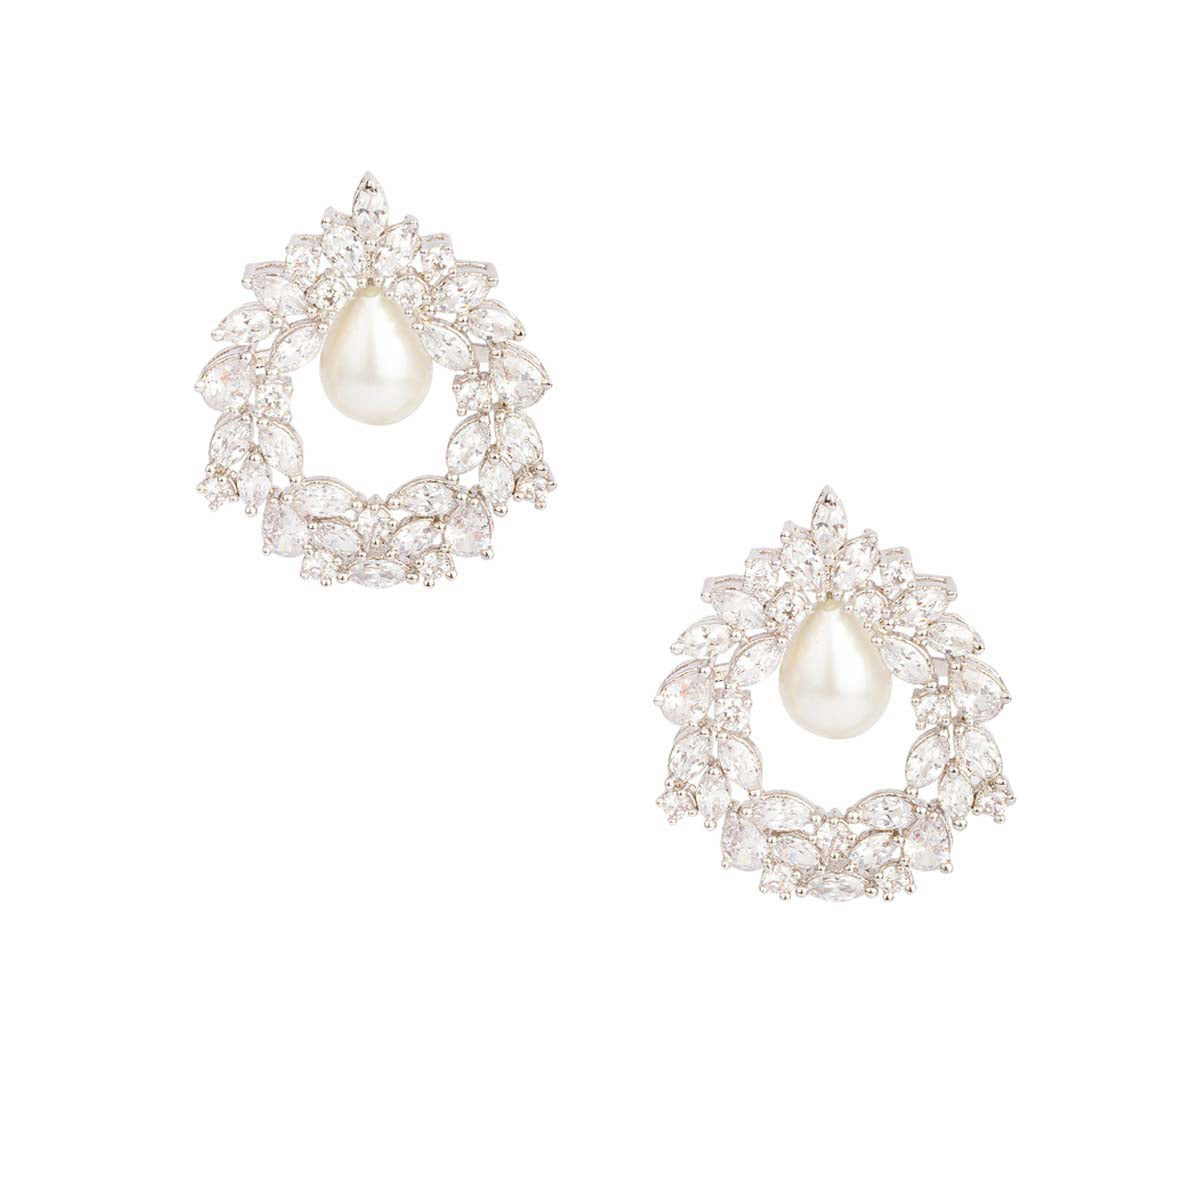 Like a star-studded dream straight from the skies, this pair brings a celestial feel to your overall look. Elegant and classic, this Ajubelle piece is crafted with white stones set in a floral reef like design with a pearl drop.